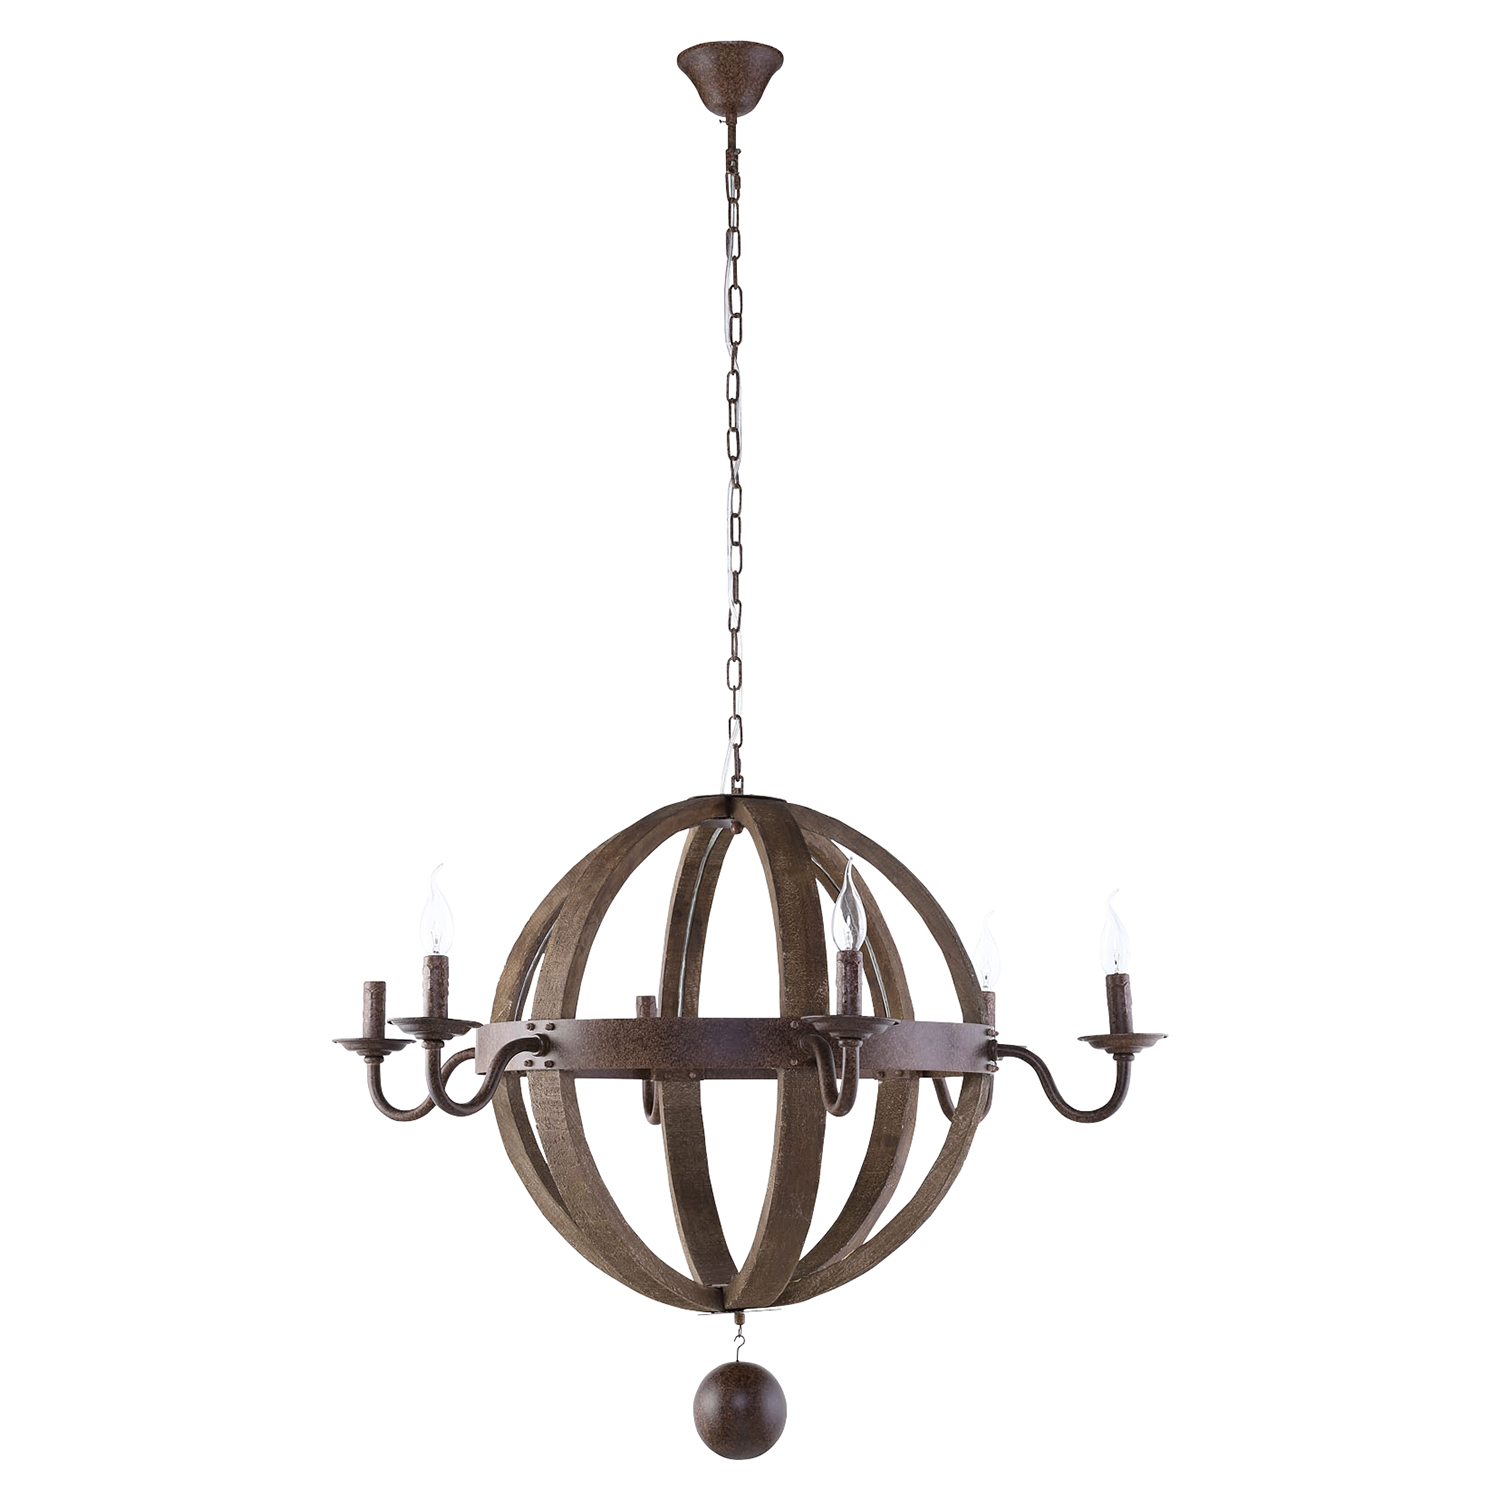 Catapult Chandelier - Antique Brass - EEI-1569